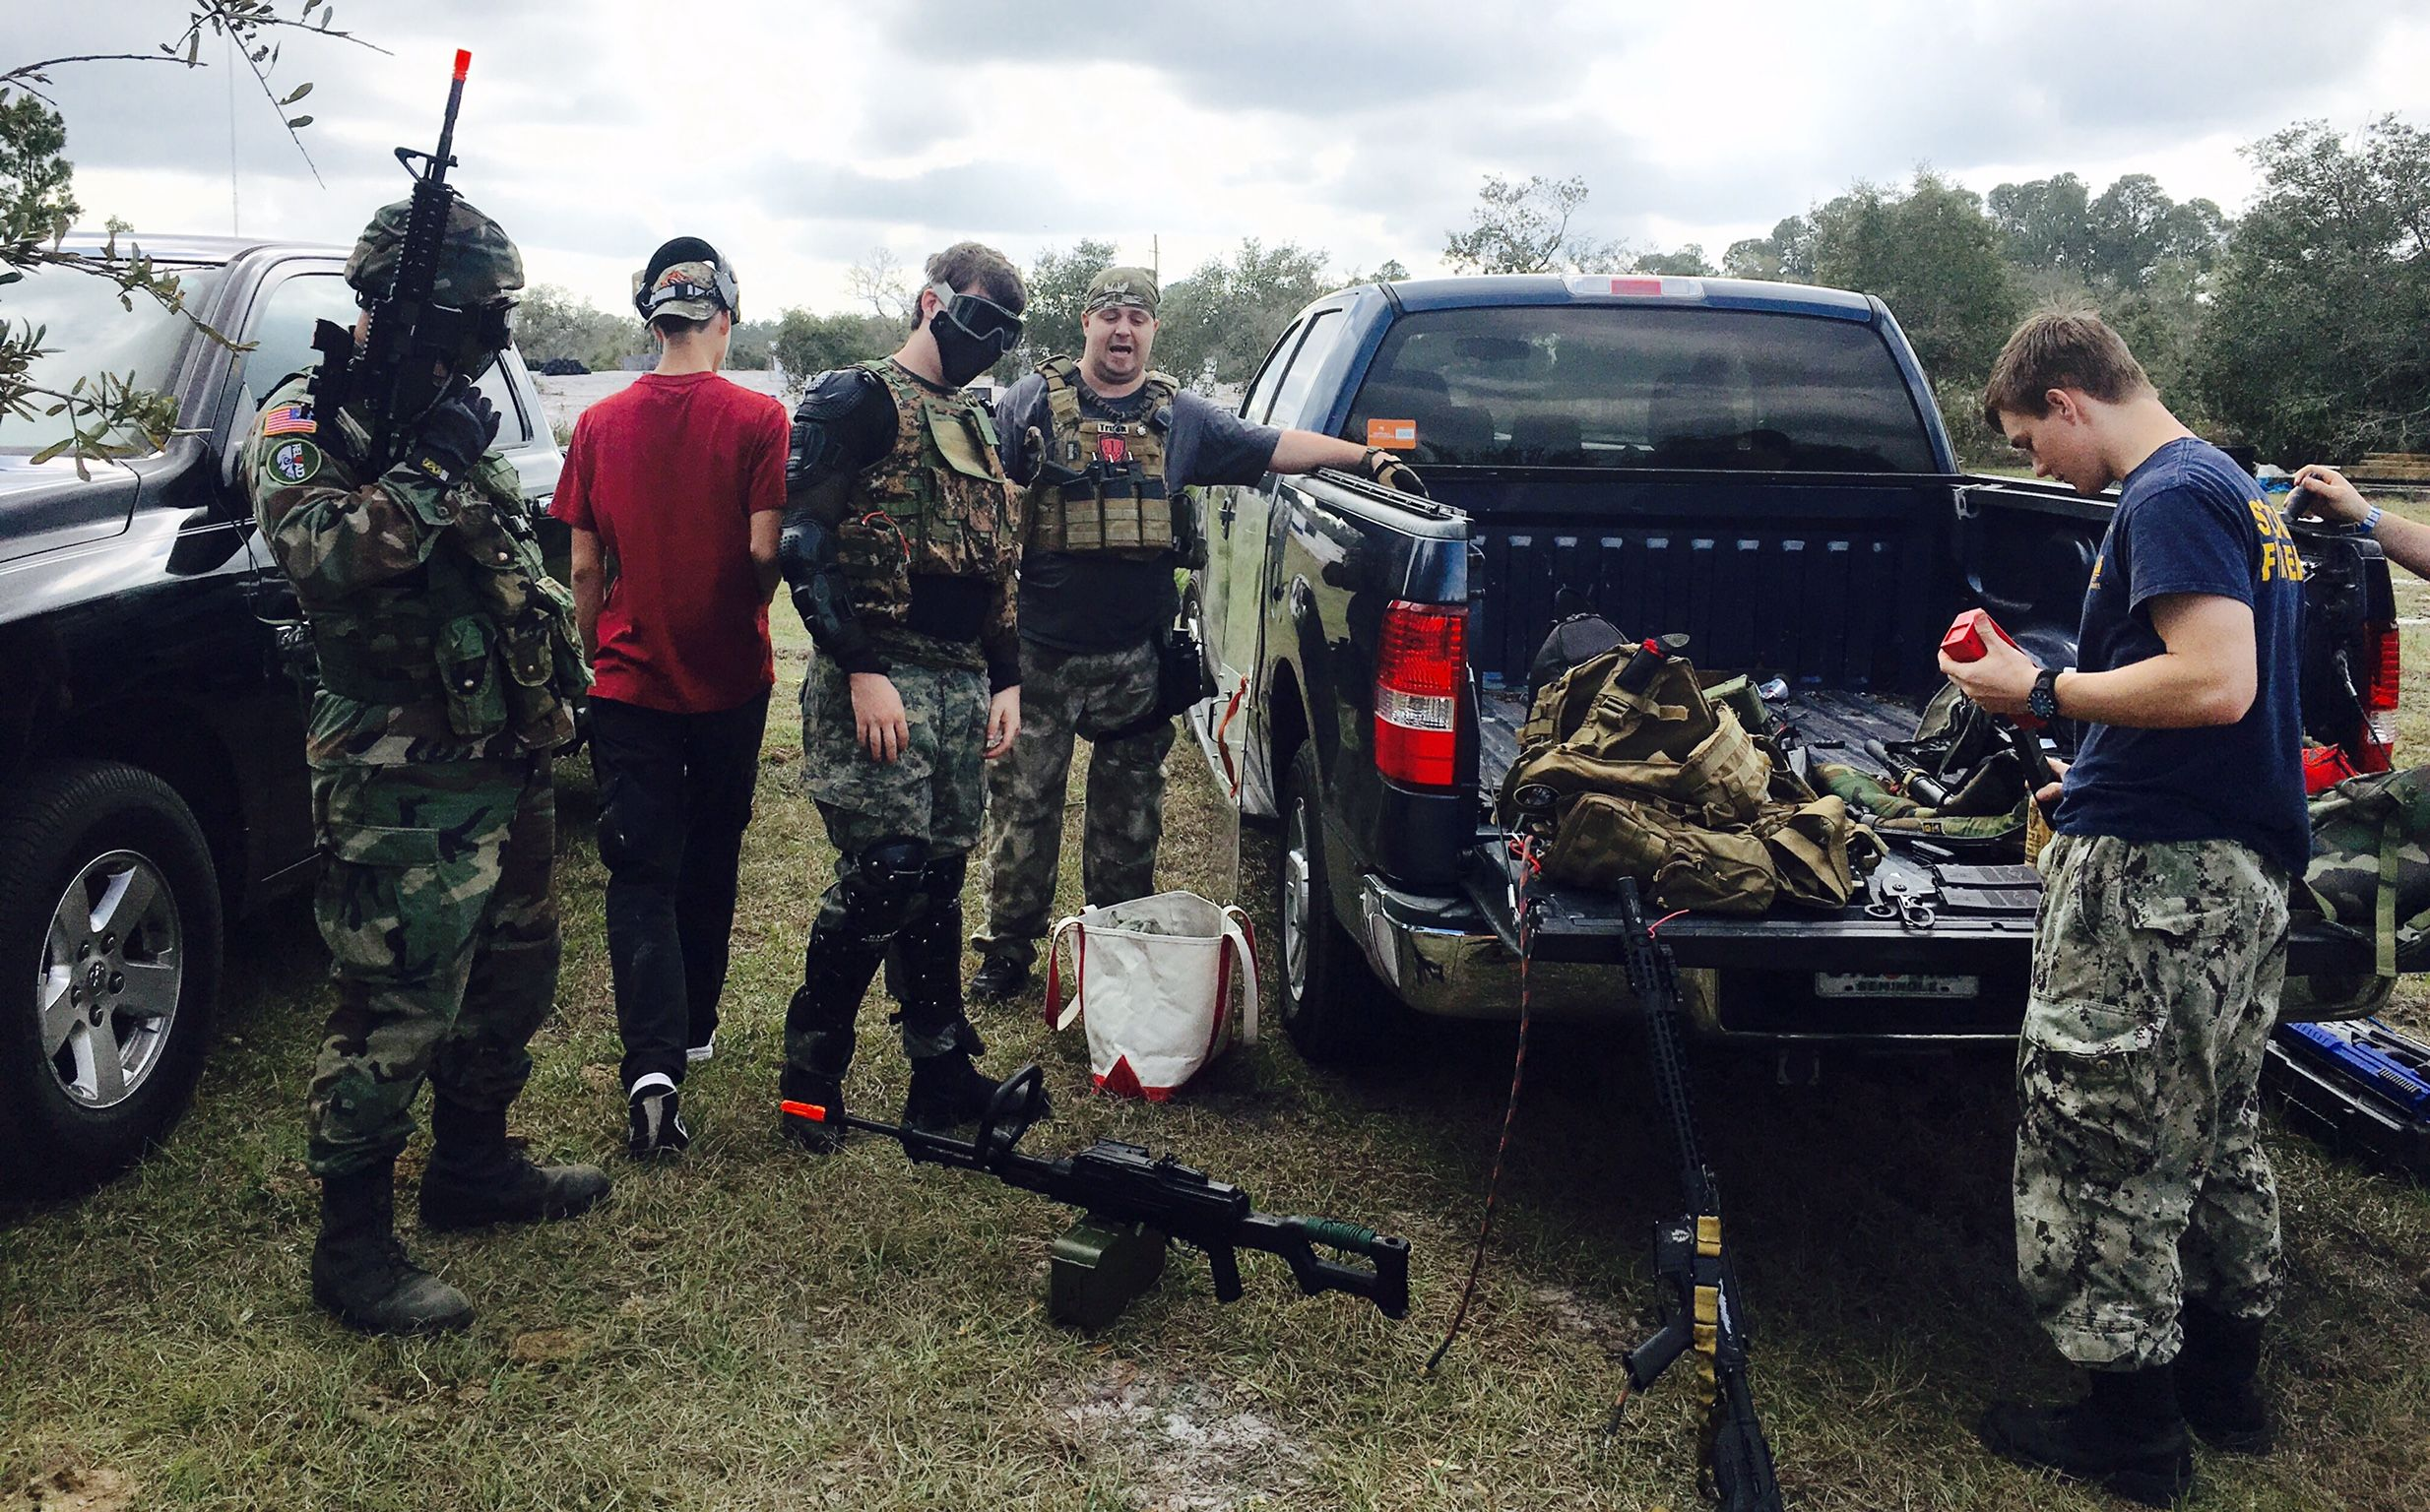 Airsoft, Archery, Agritourism & Fishing in Central Florida